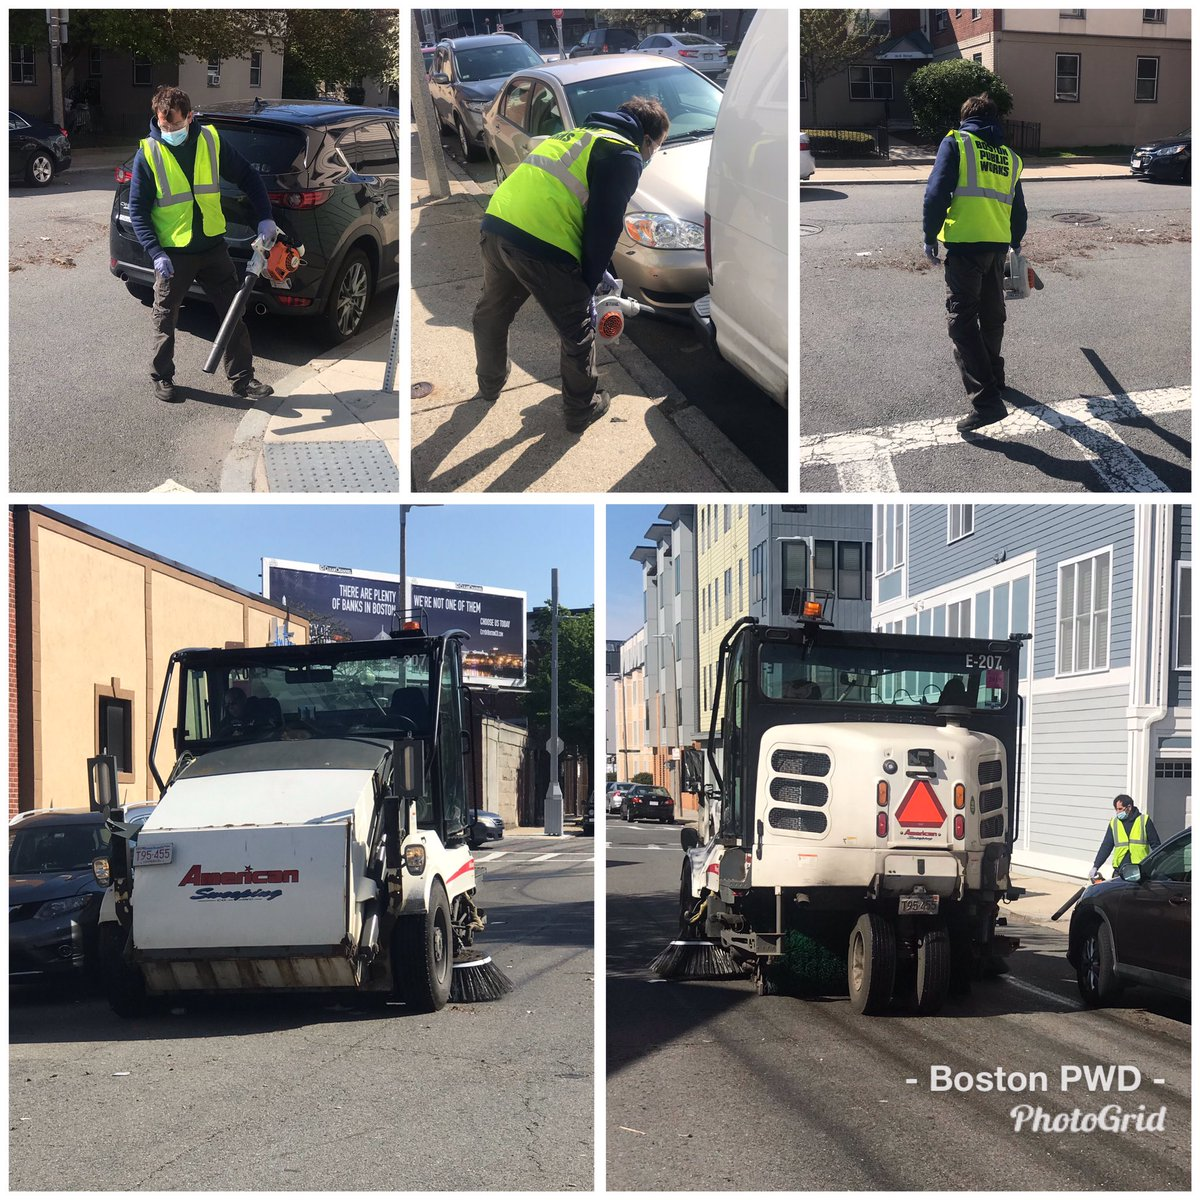 PWD's District 5 crew is busy this morning cleaning and sweeping litter on B Street in #SouthBoston.